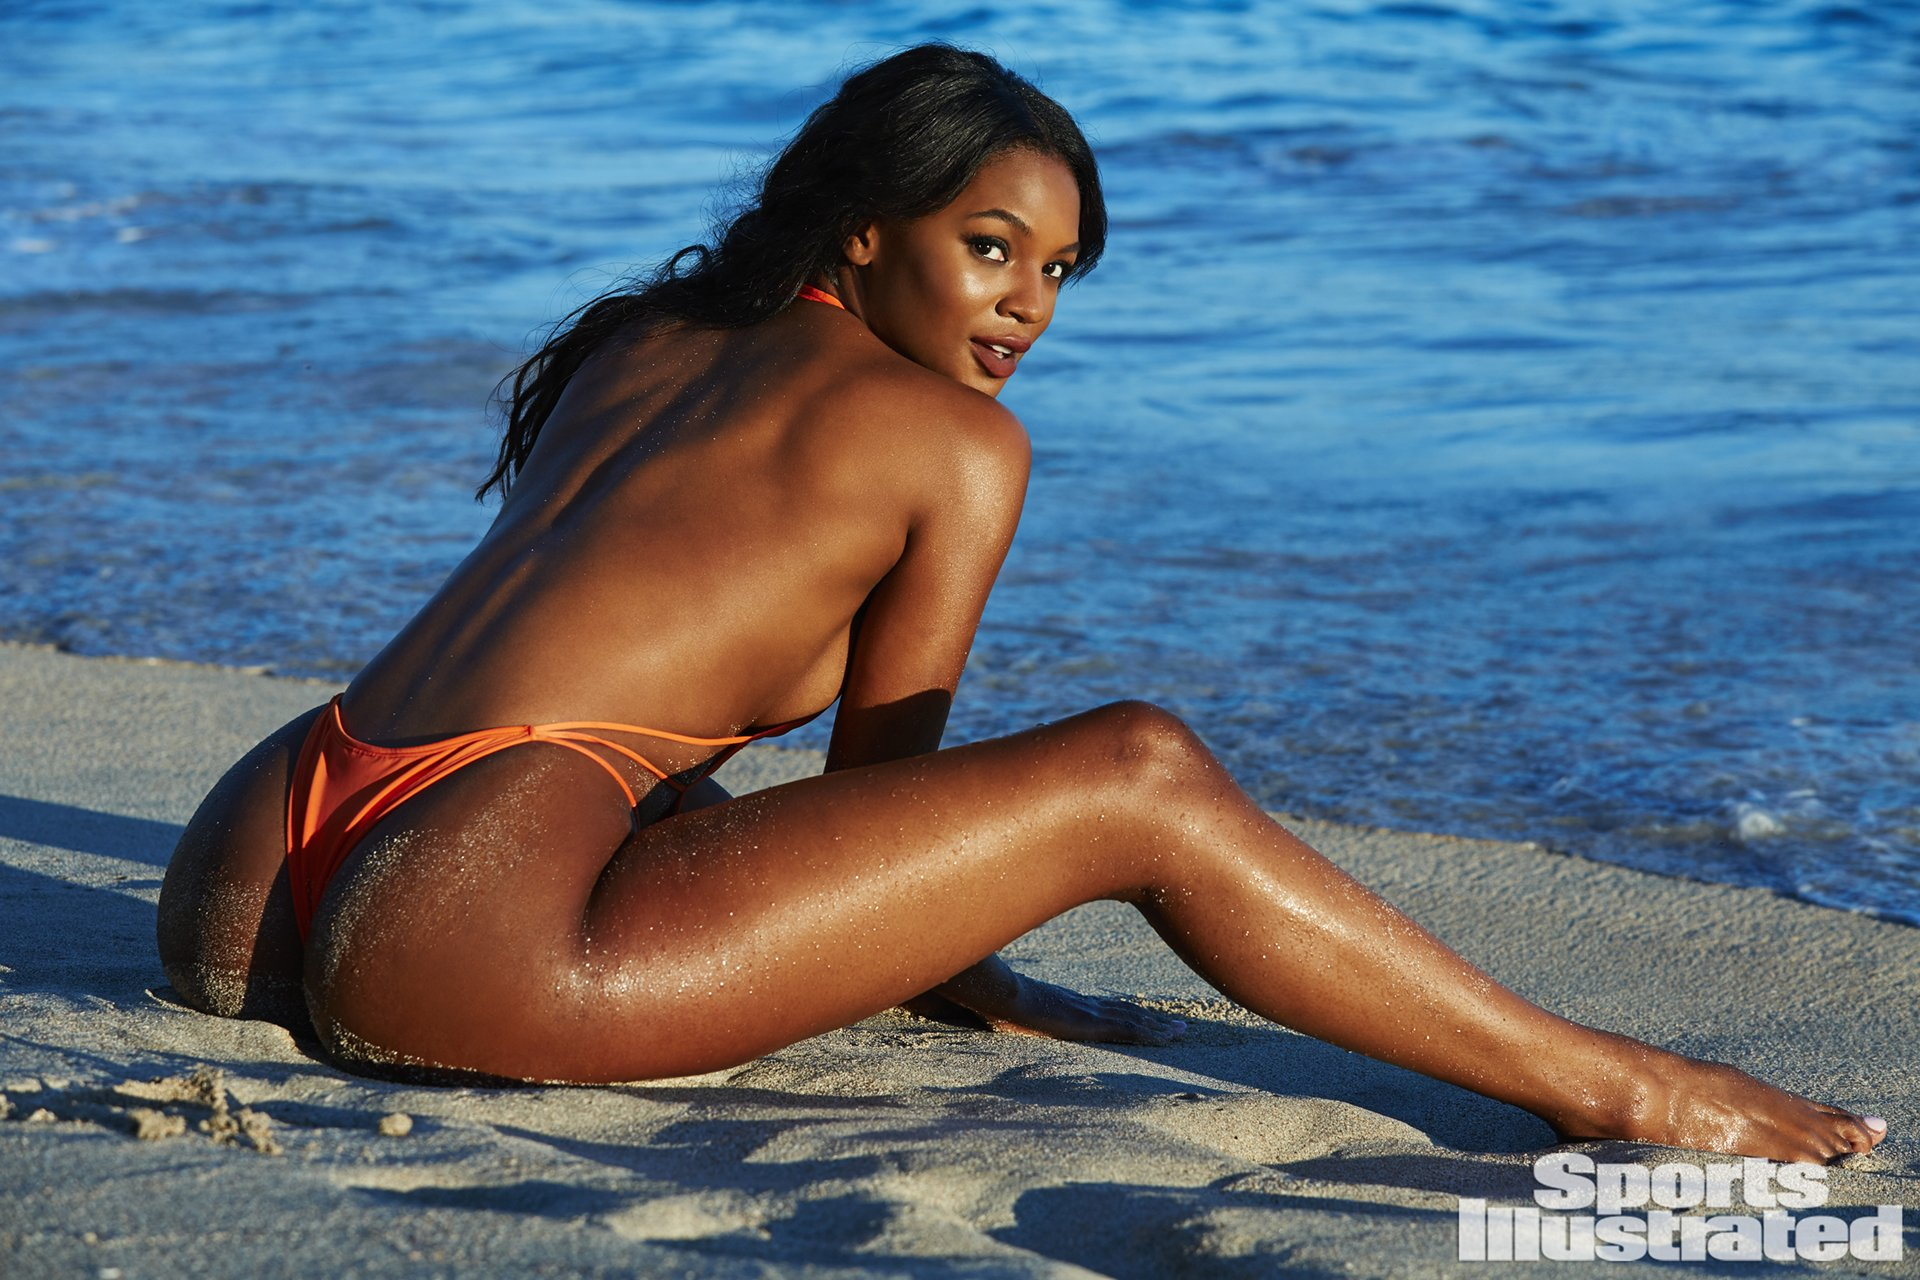 Sports Illustrated Swimsuit Issue 2018 (16).jpg